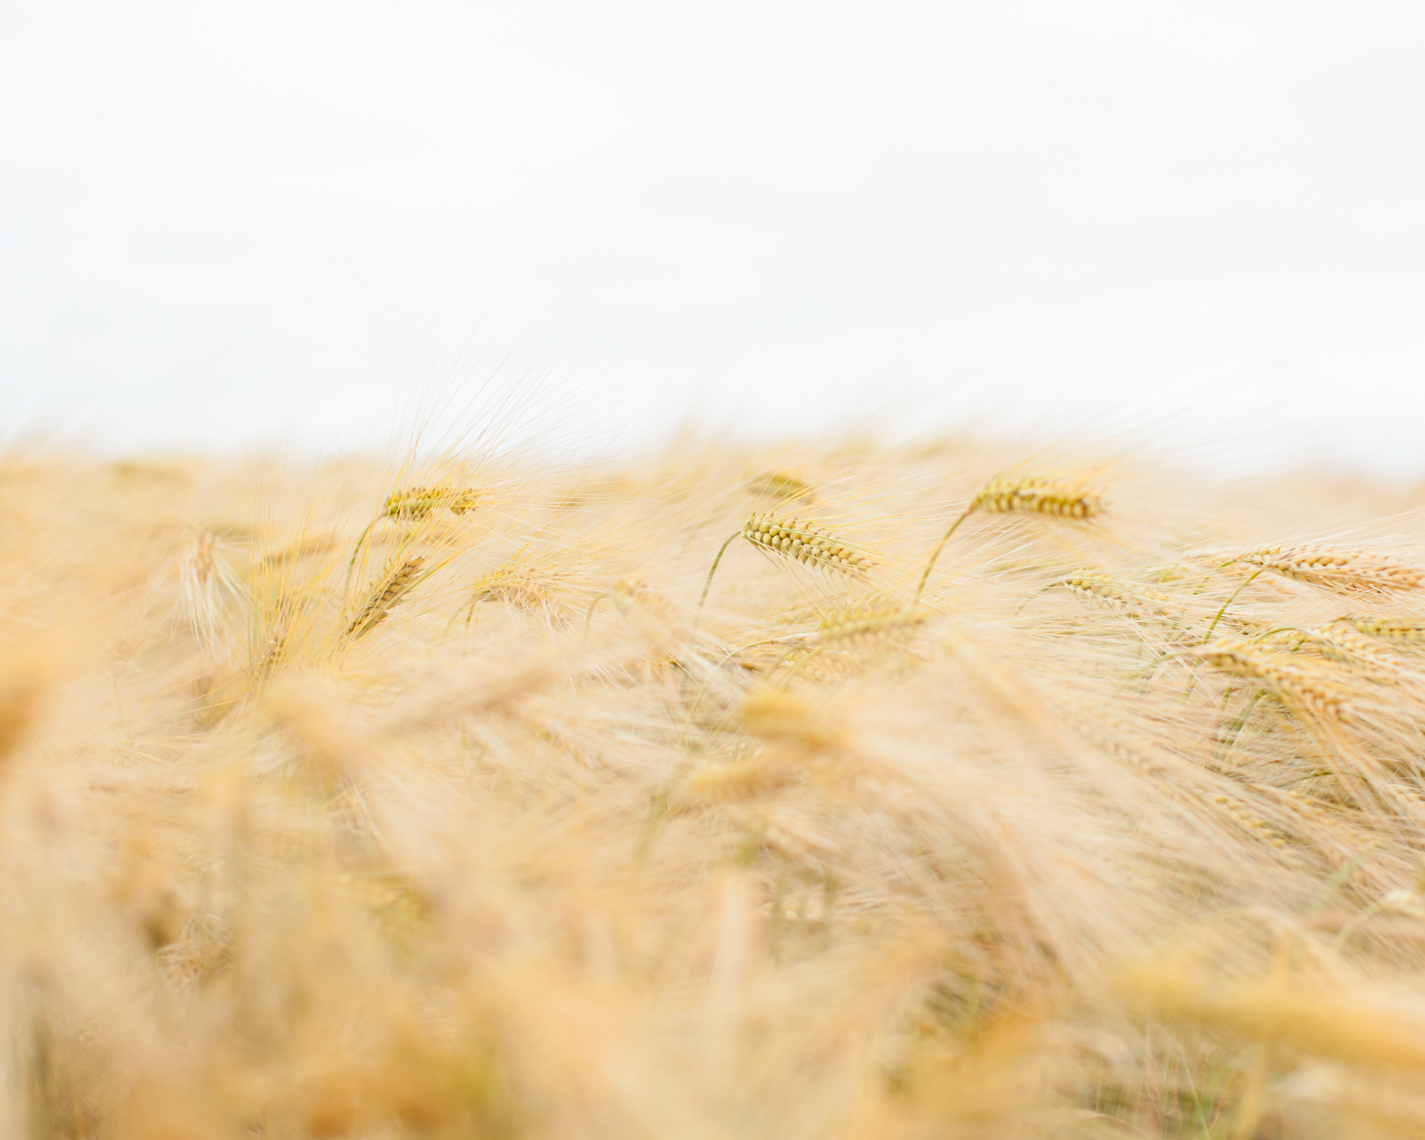 Landscape of wheat field | Tosca Radigonda Photography